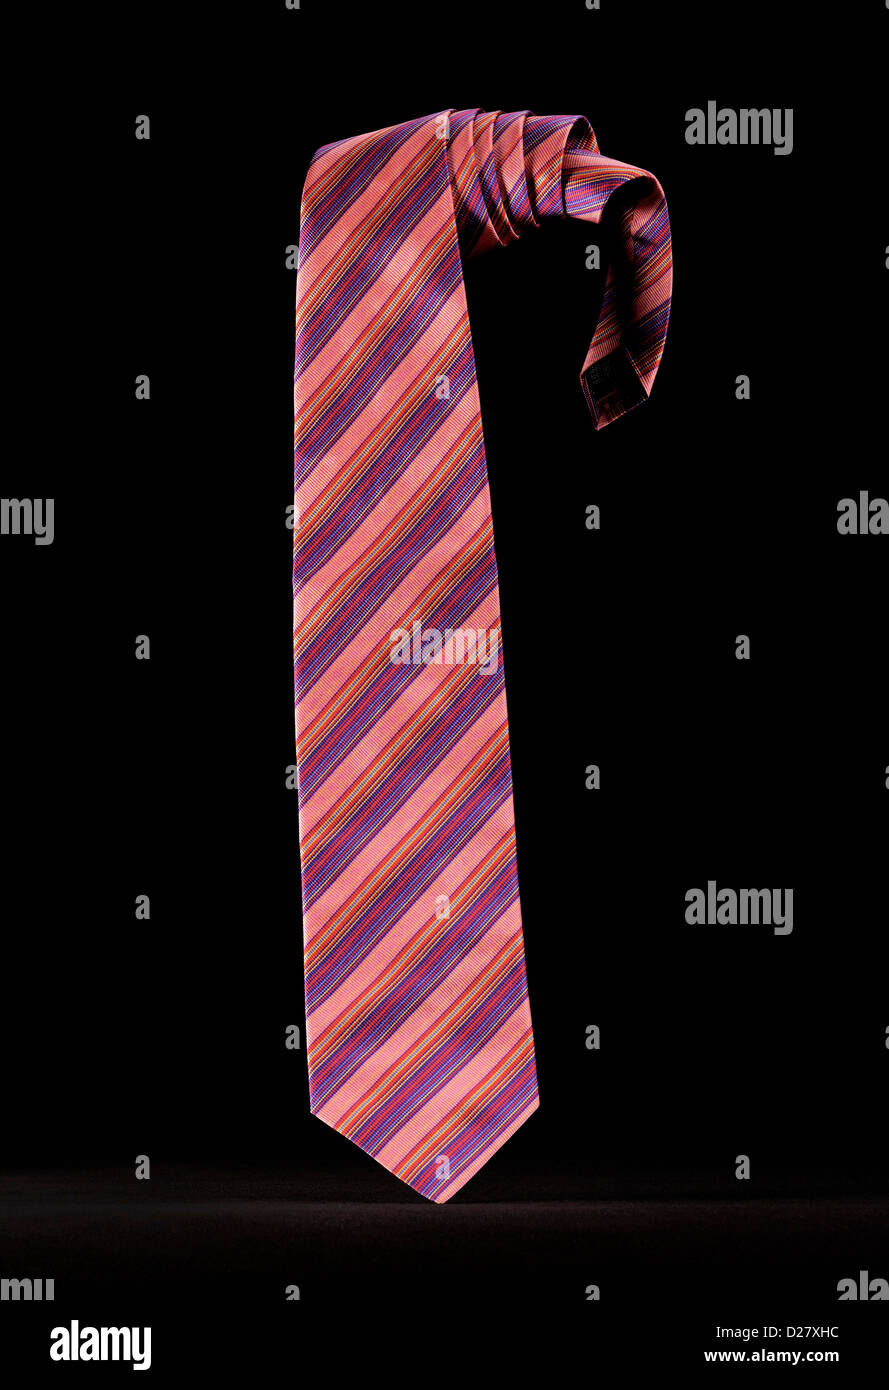 Pink and Purple Striped necktie on Black Background - Stock Image